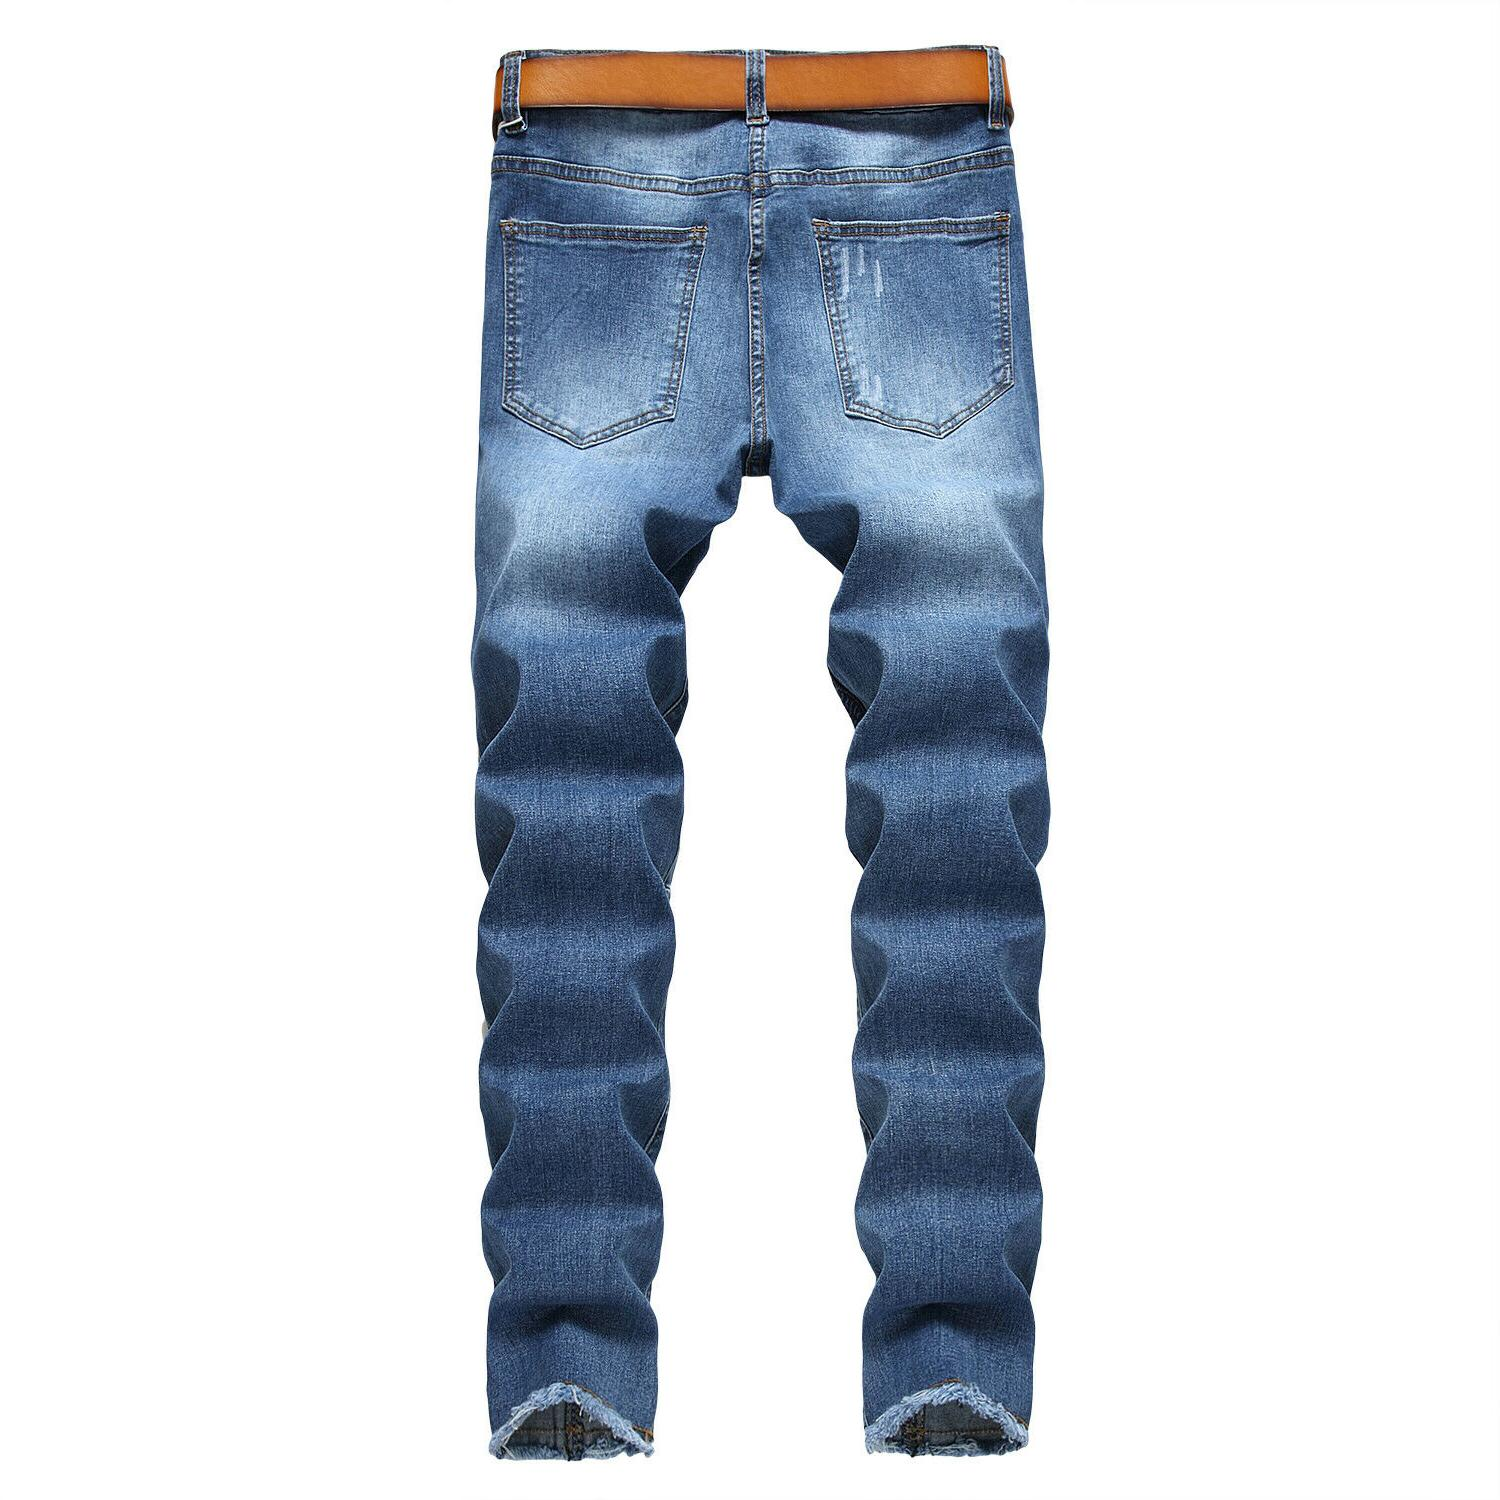 Men's Biker Skinny Jeans Distressed